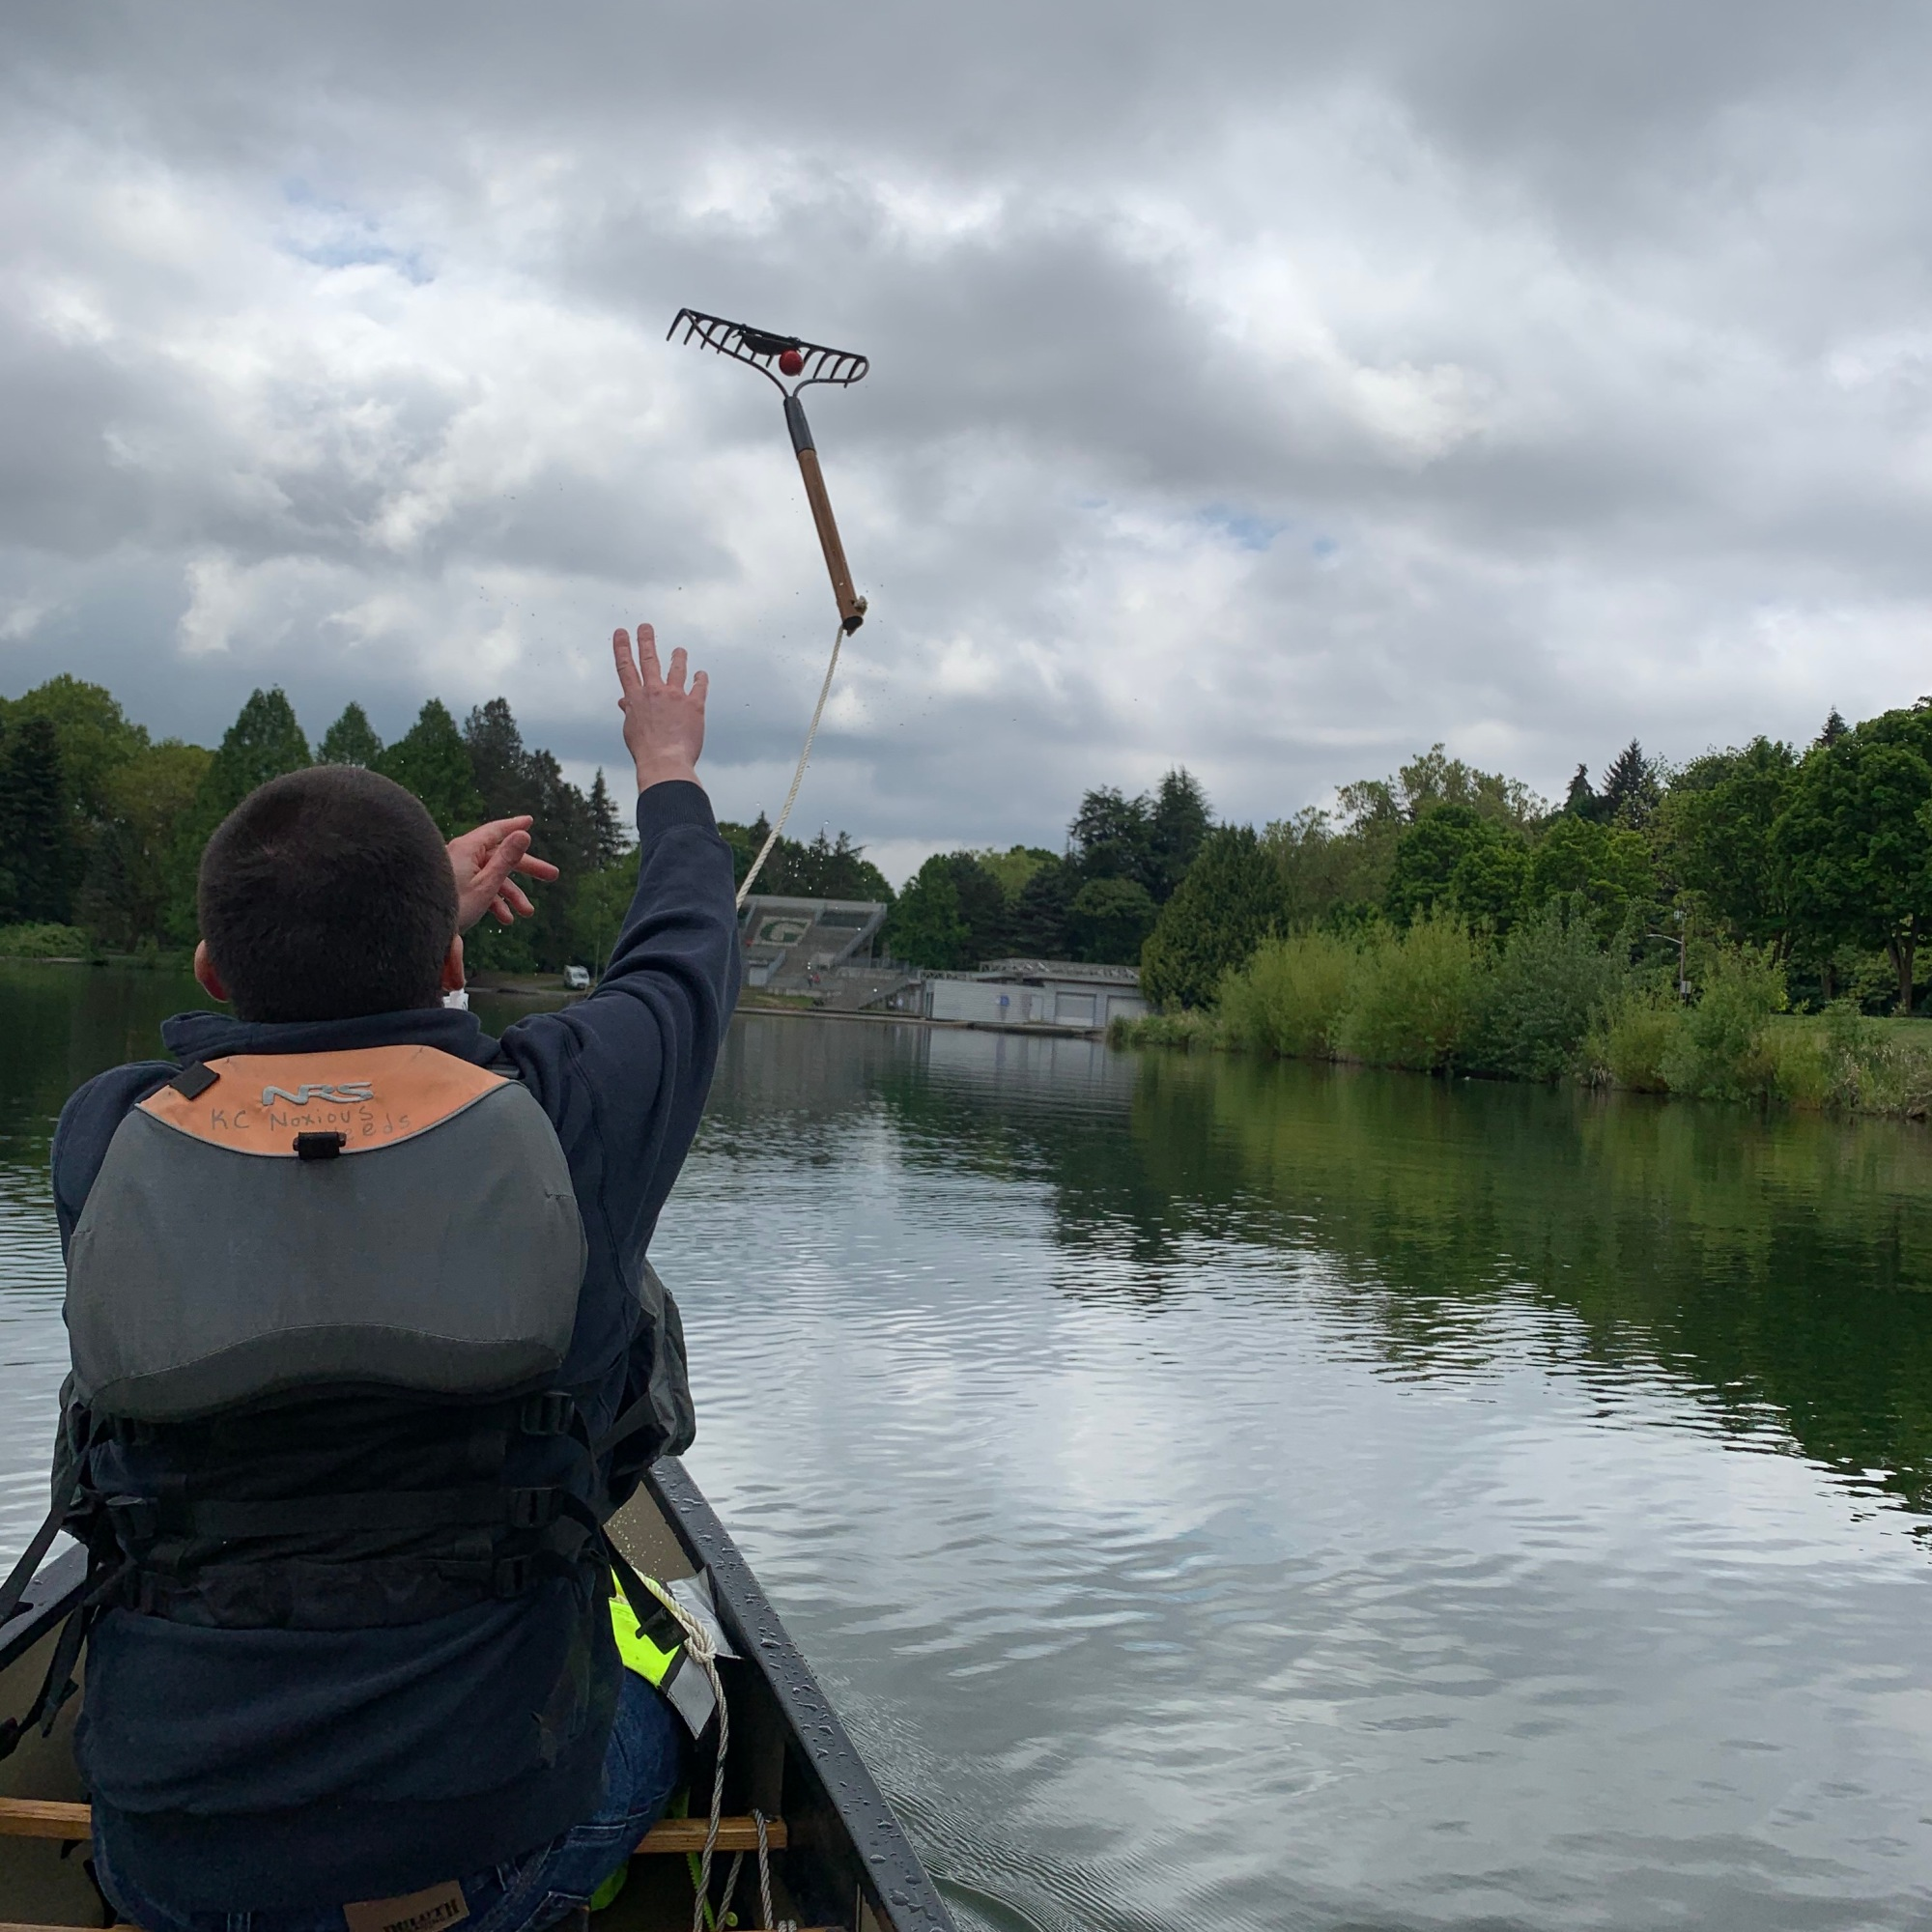 A person in a canoe tosses a rake tied to a rope into a lake to check for aquatic plants